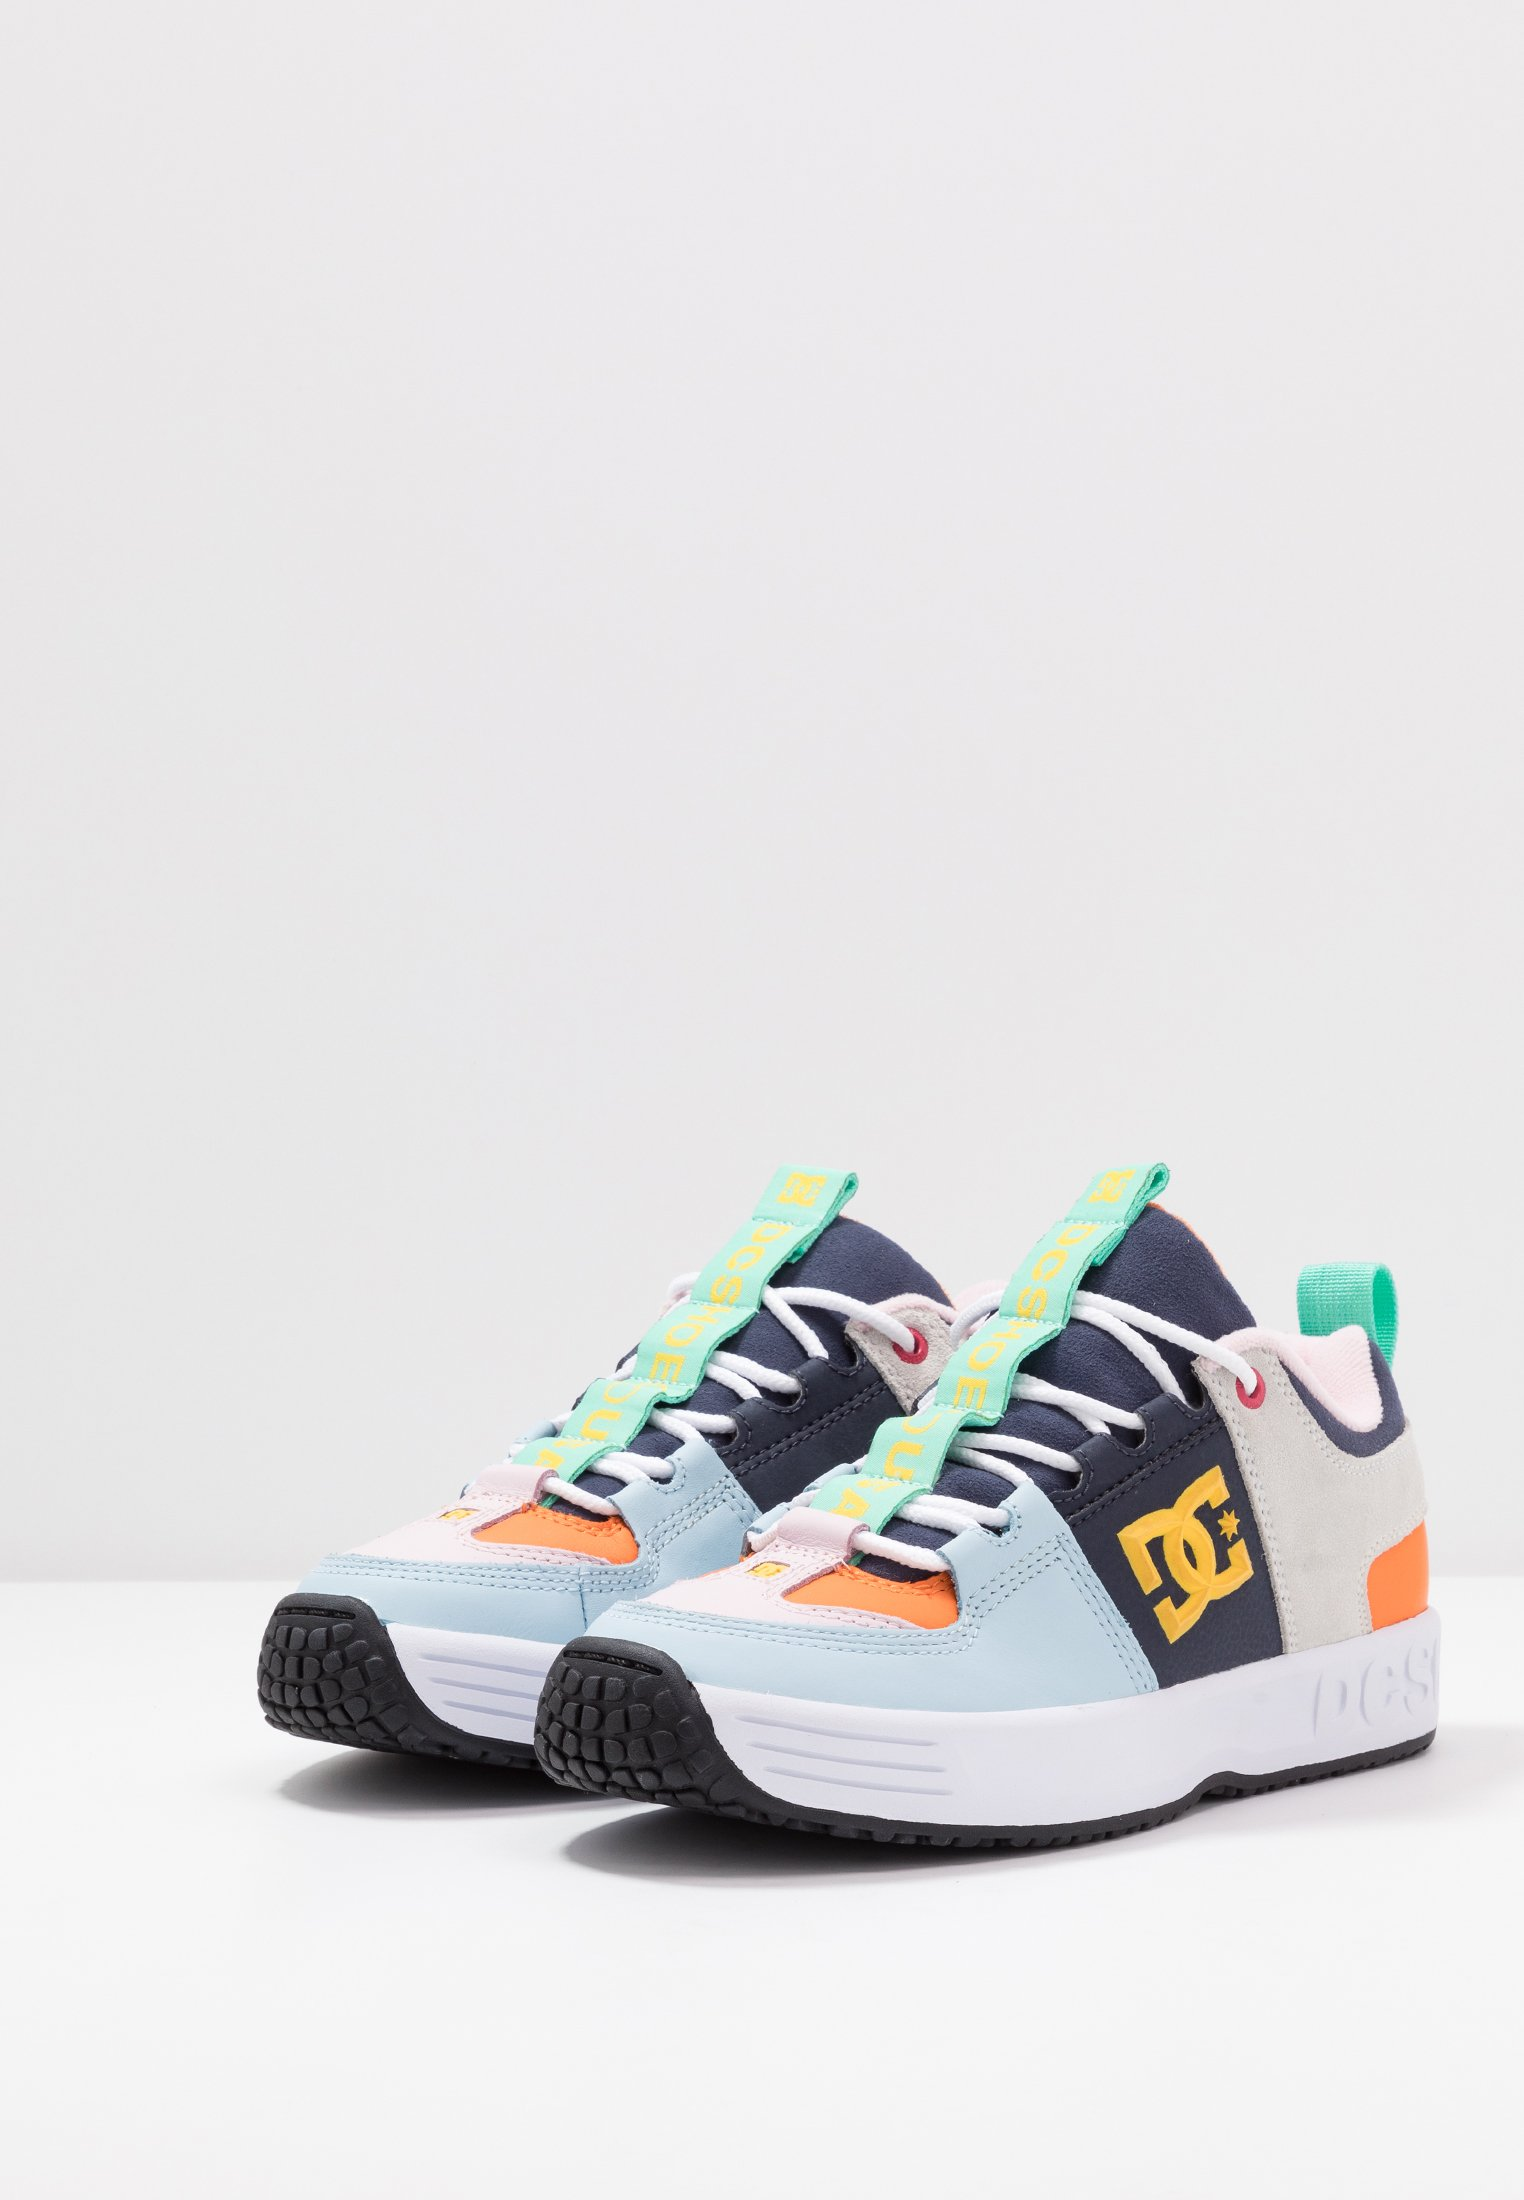 Shoes LynxSneakers Dc Shoes LynxSneakers BasseMulticolor BasseMulticolor Dc Shoes Dc wn0v8OmN